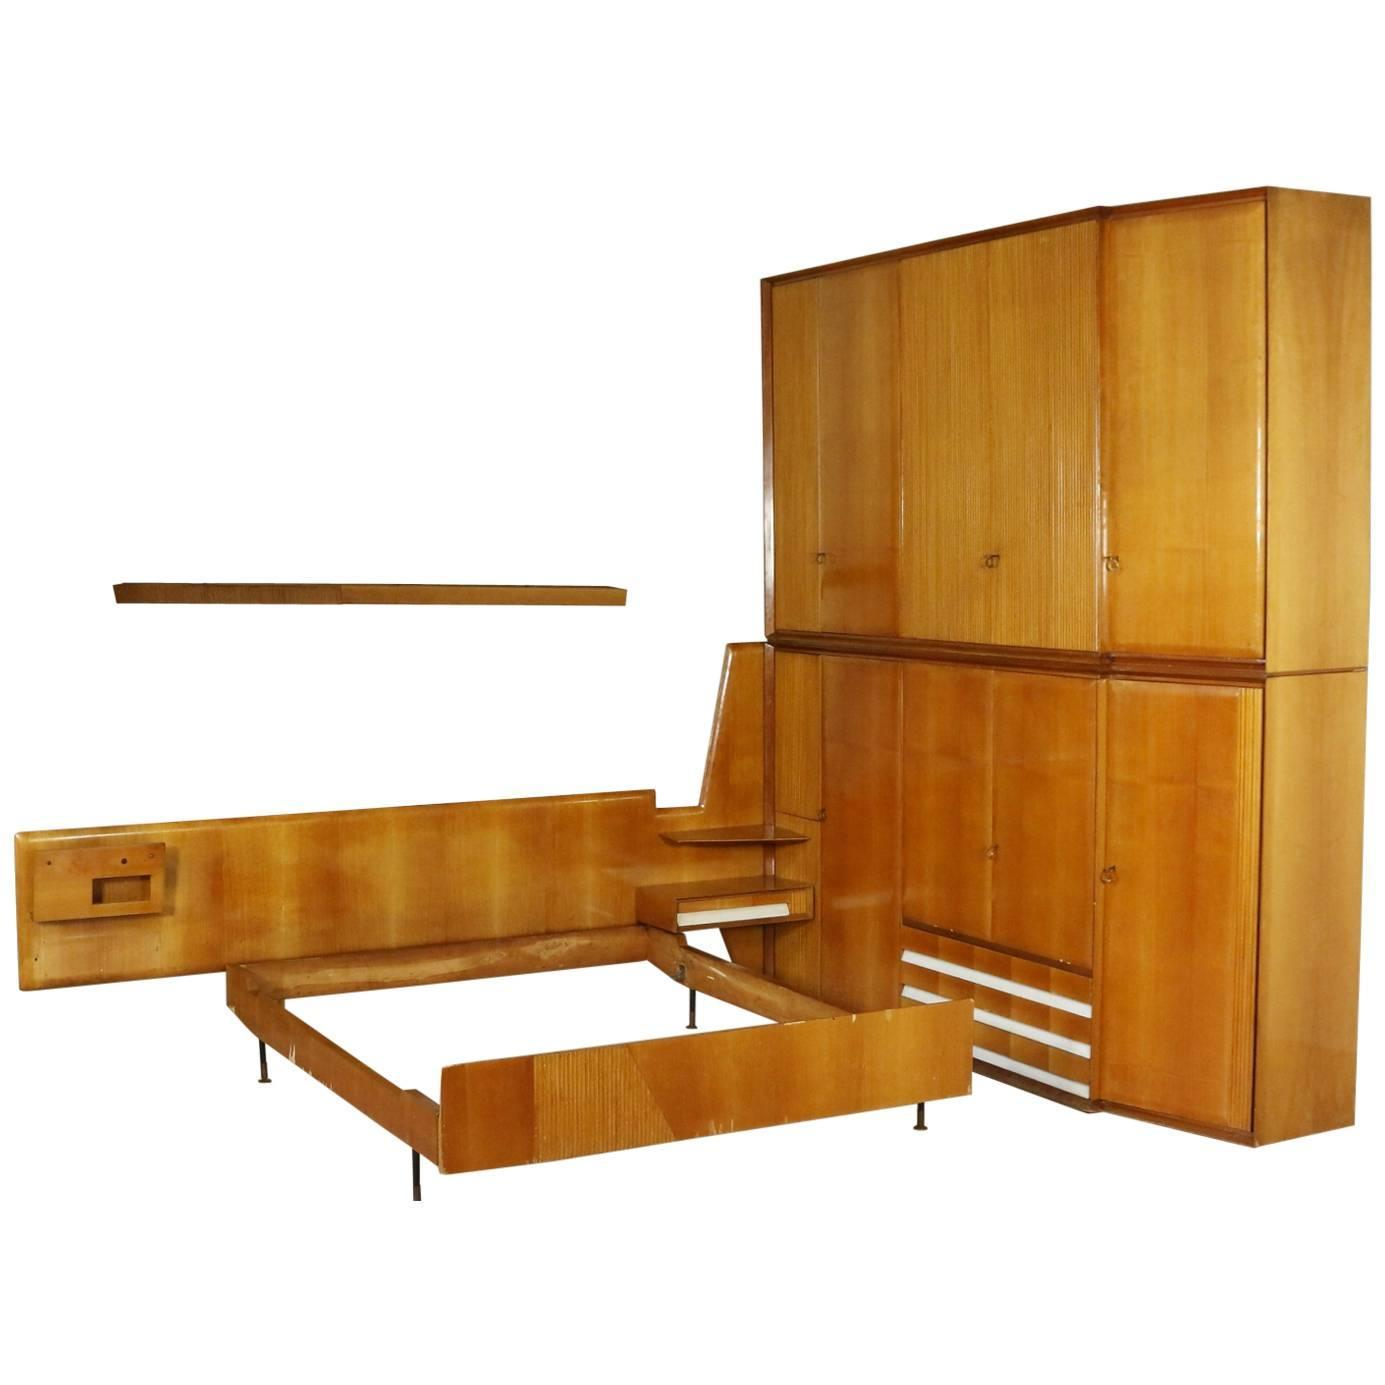 bedroom wardrobe and double bed maple veneer mahogany vintage italy